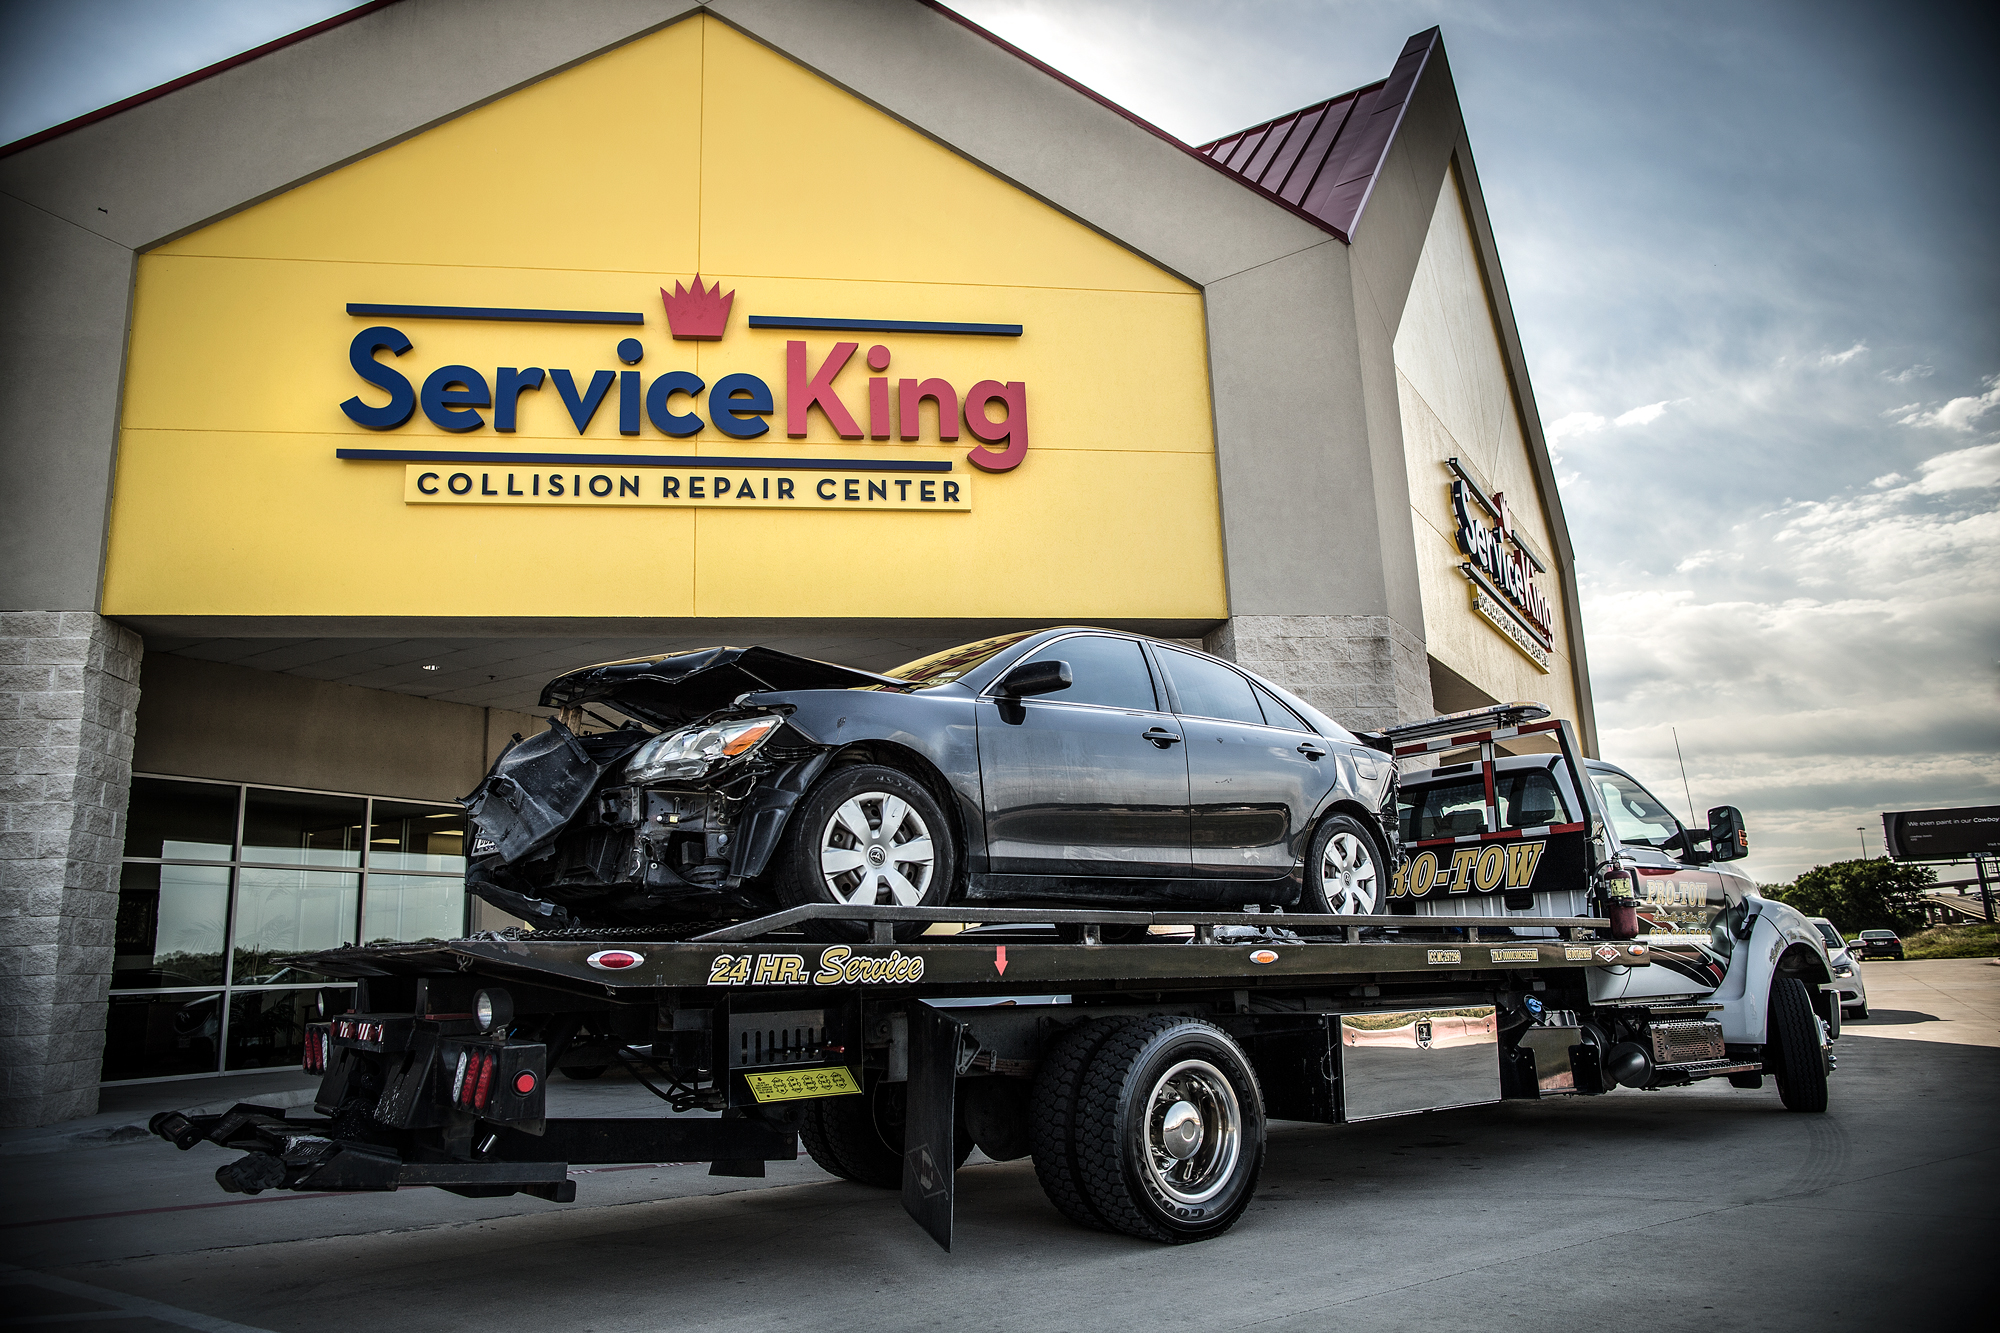 Collision Repair Center >> Service King Collision Repair Center 1815 N Moore Ave Moore Ok